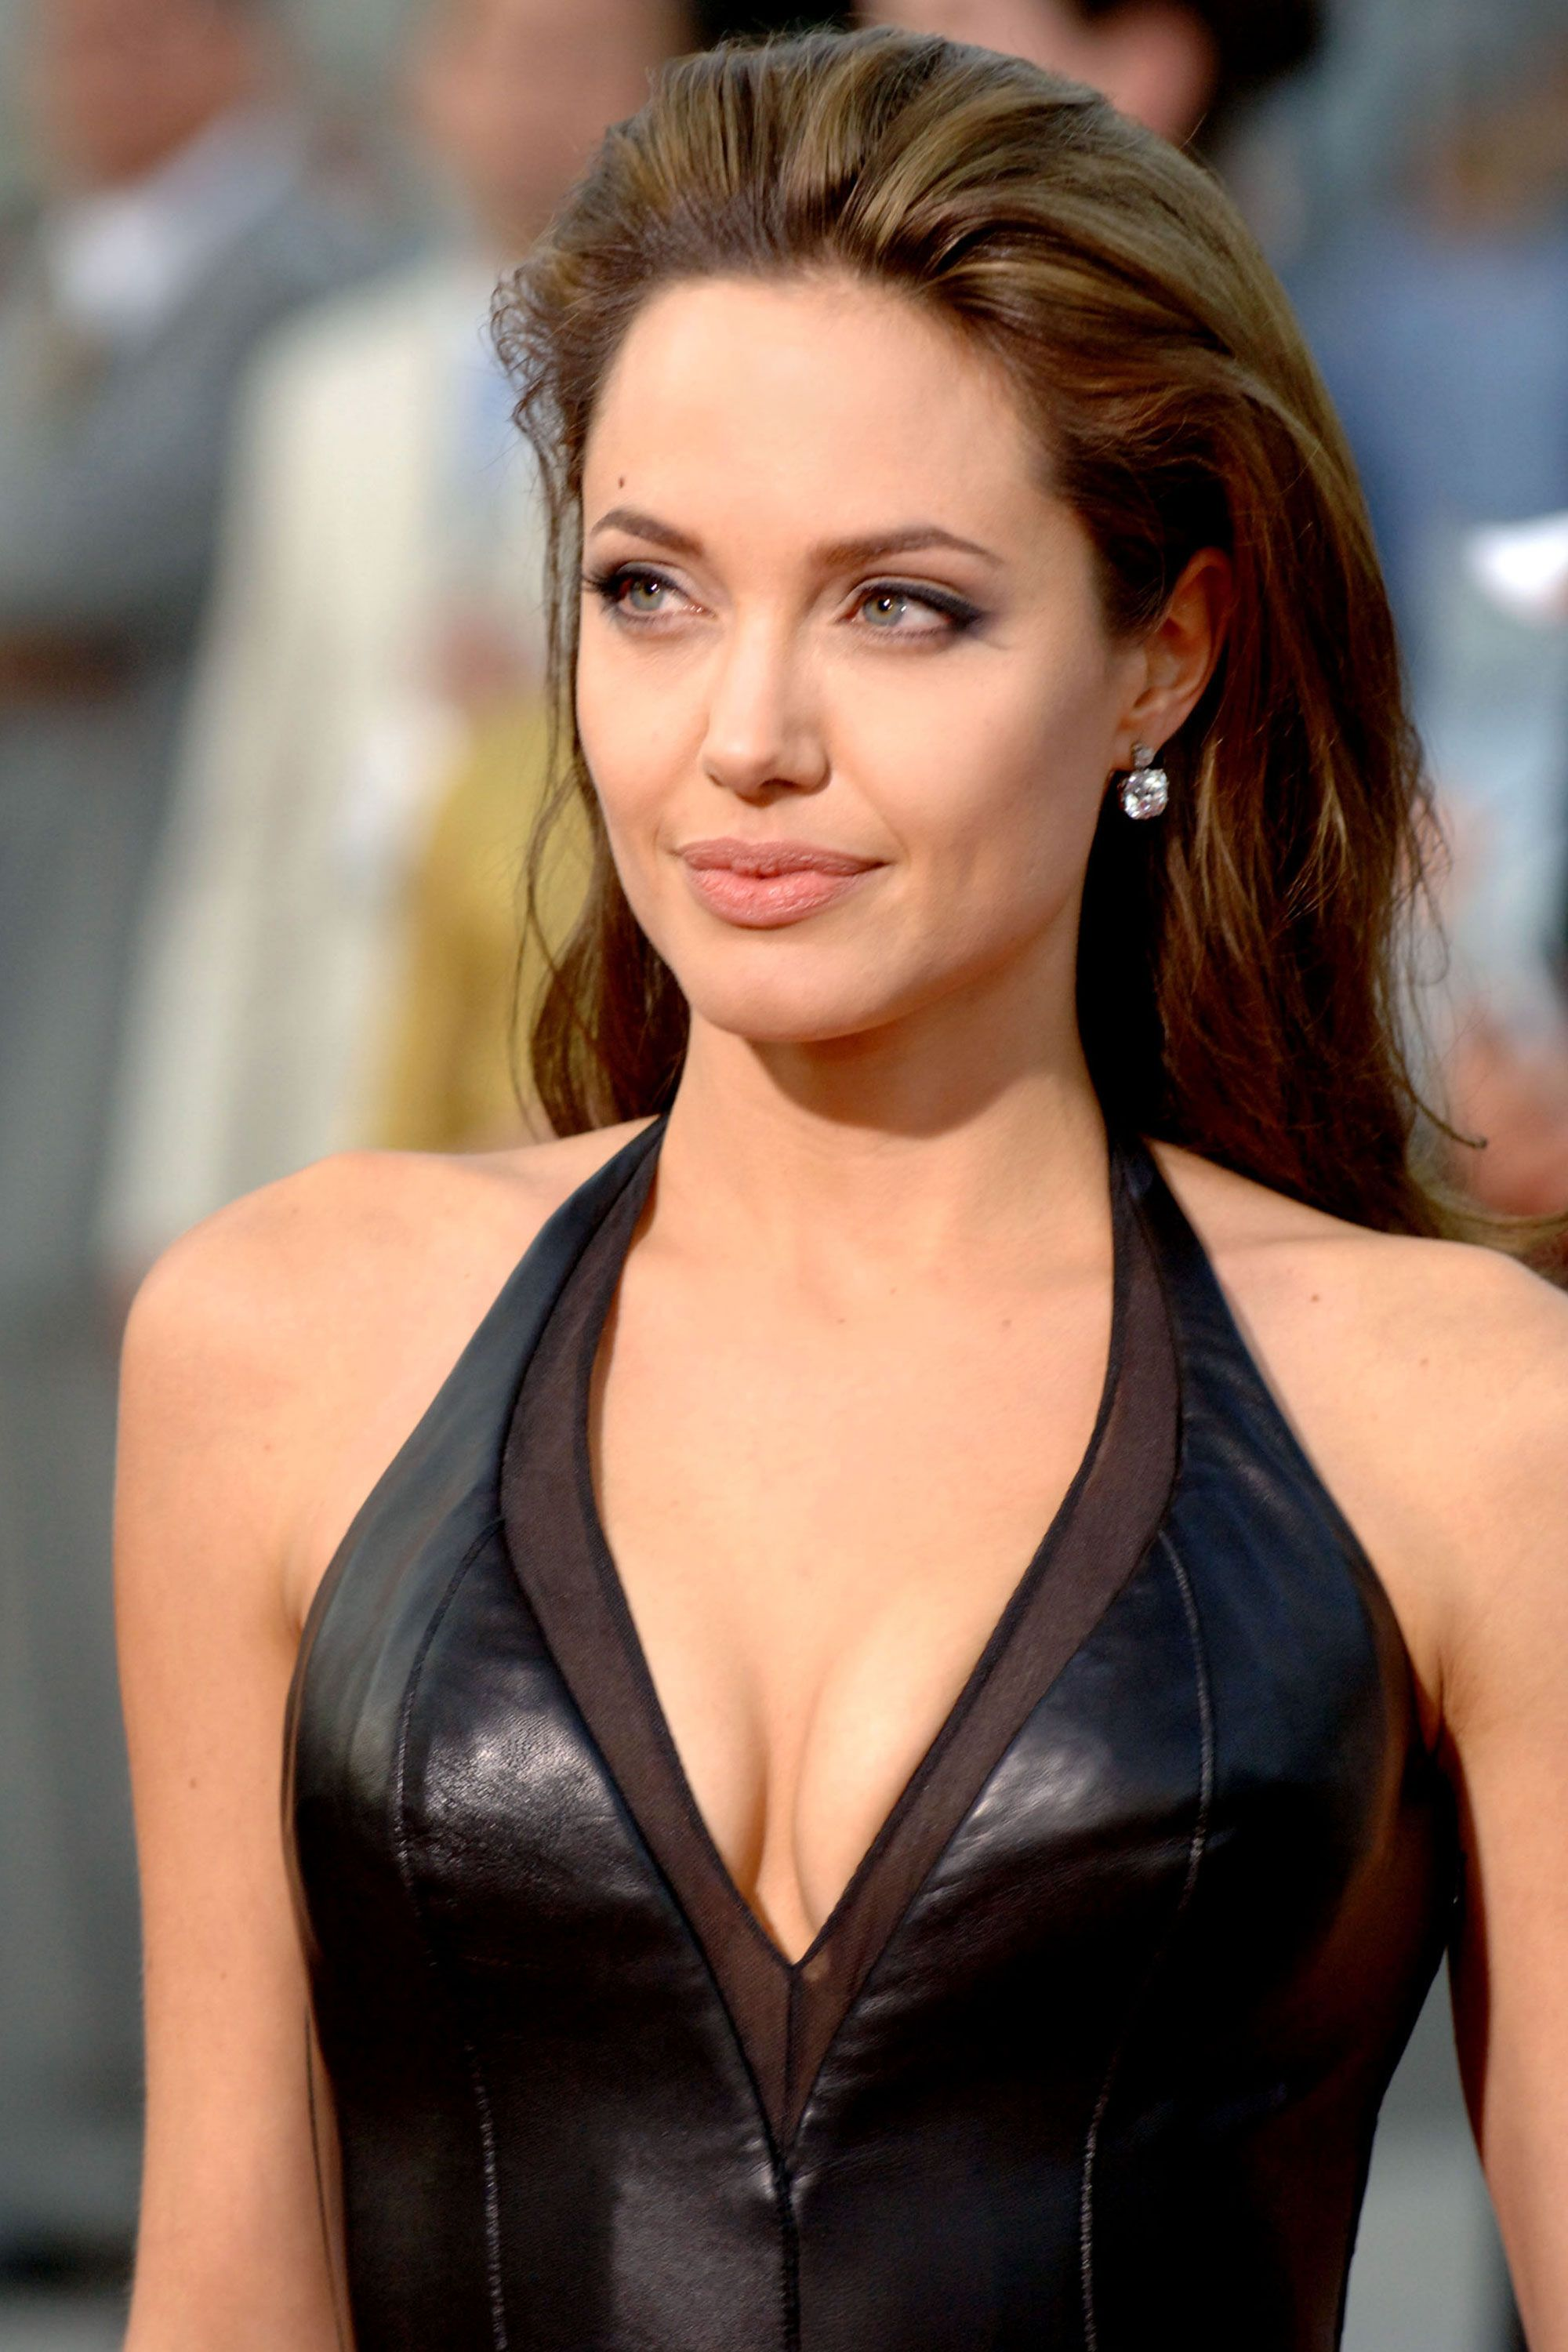 Angelina Jolie Mr And Mrs Smith Interview Tres Jolie Angelina S Best Beauty Moments Angelina Jolie Angelina Jolie Photos Beauty